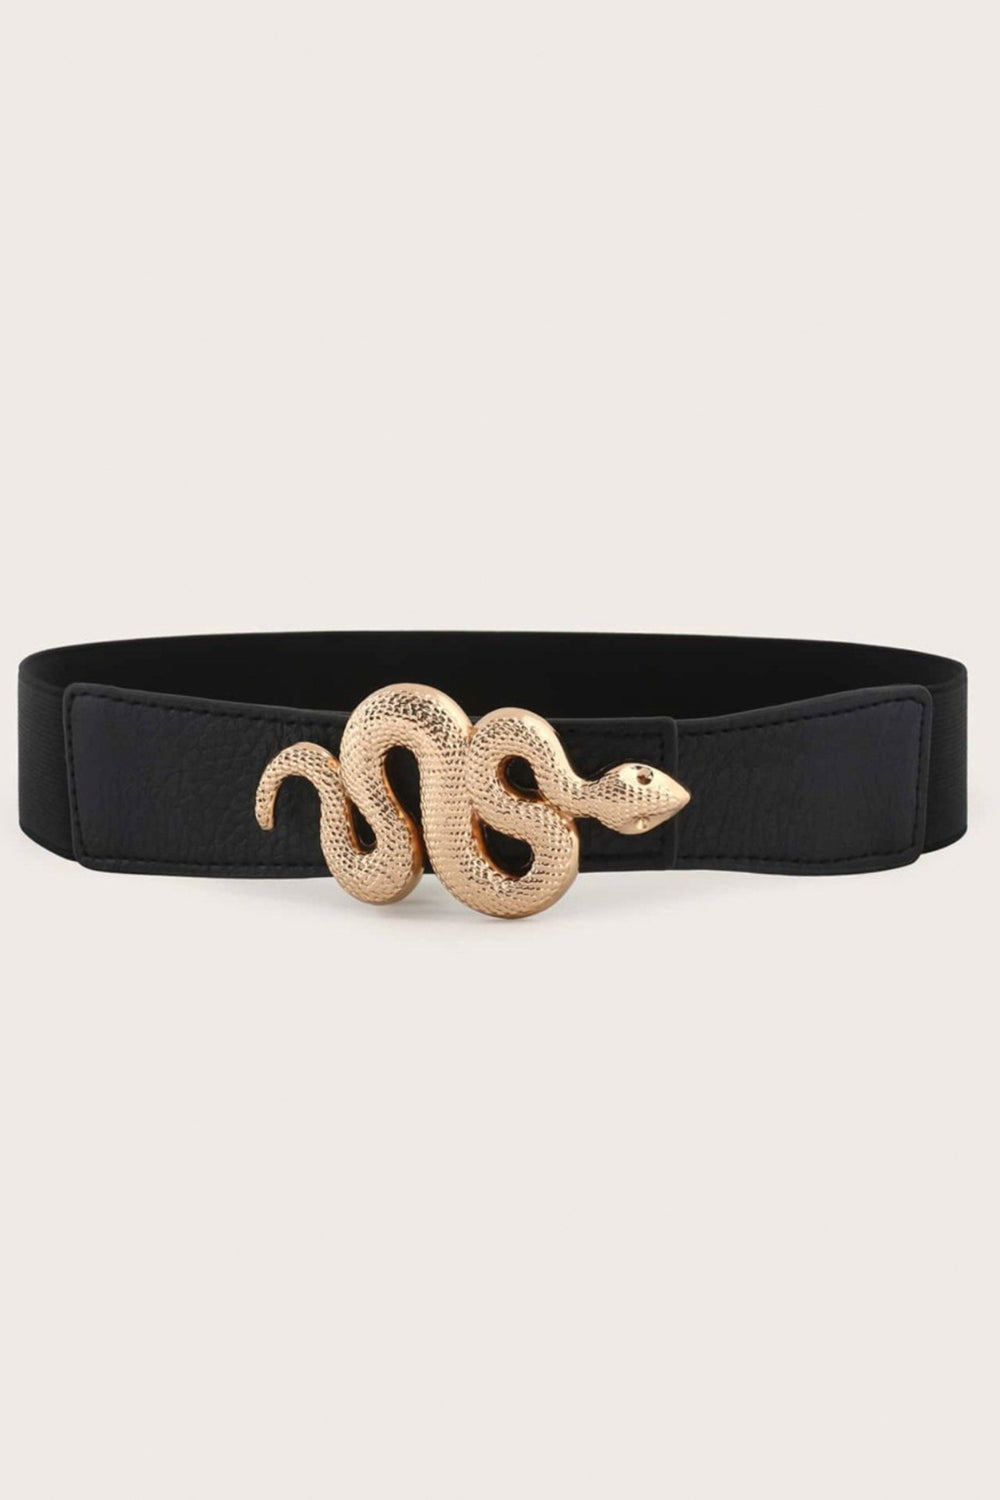 SNAKE BUCKLE BELT | Women's Online Shopping | CHICLEFRIQUE  (4413676552281)